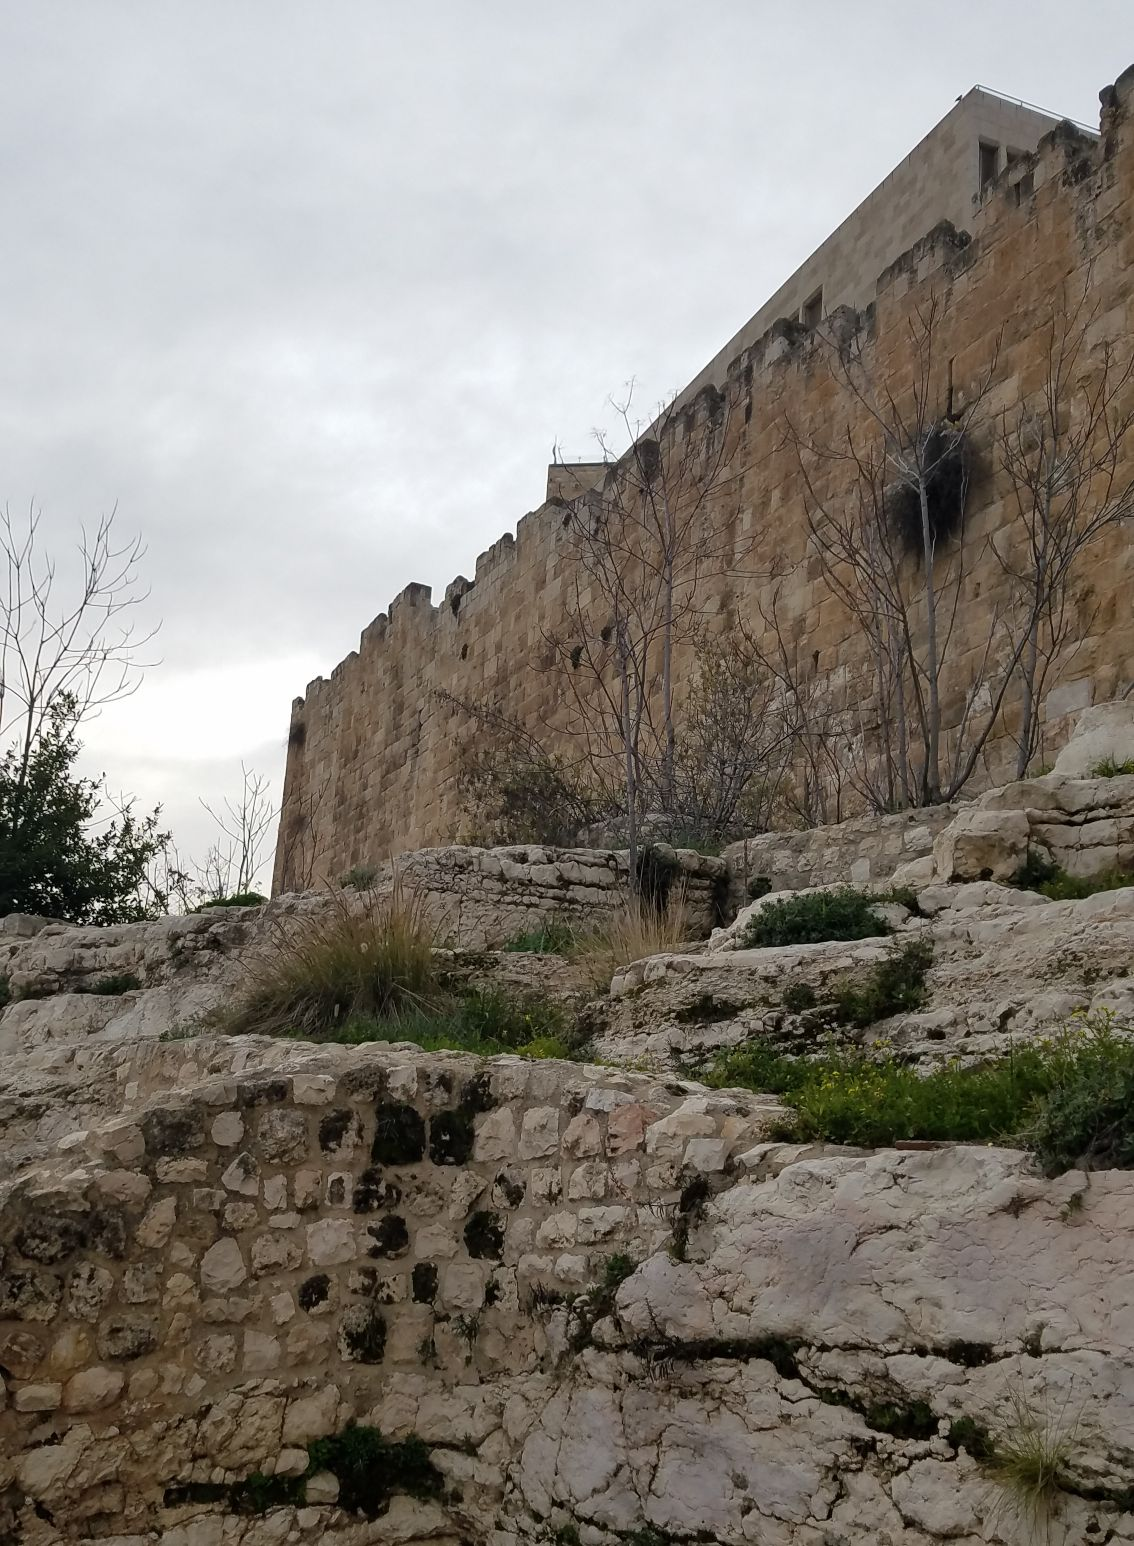 Outside of the Eastern Wall of the City2